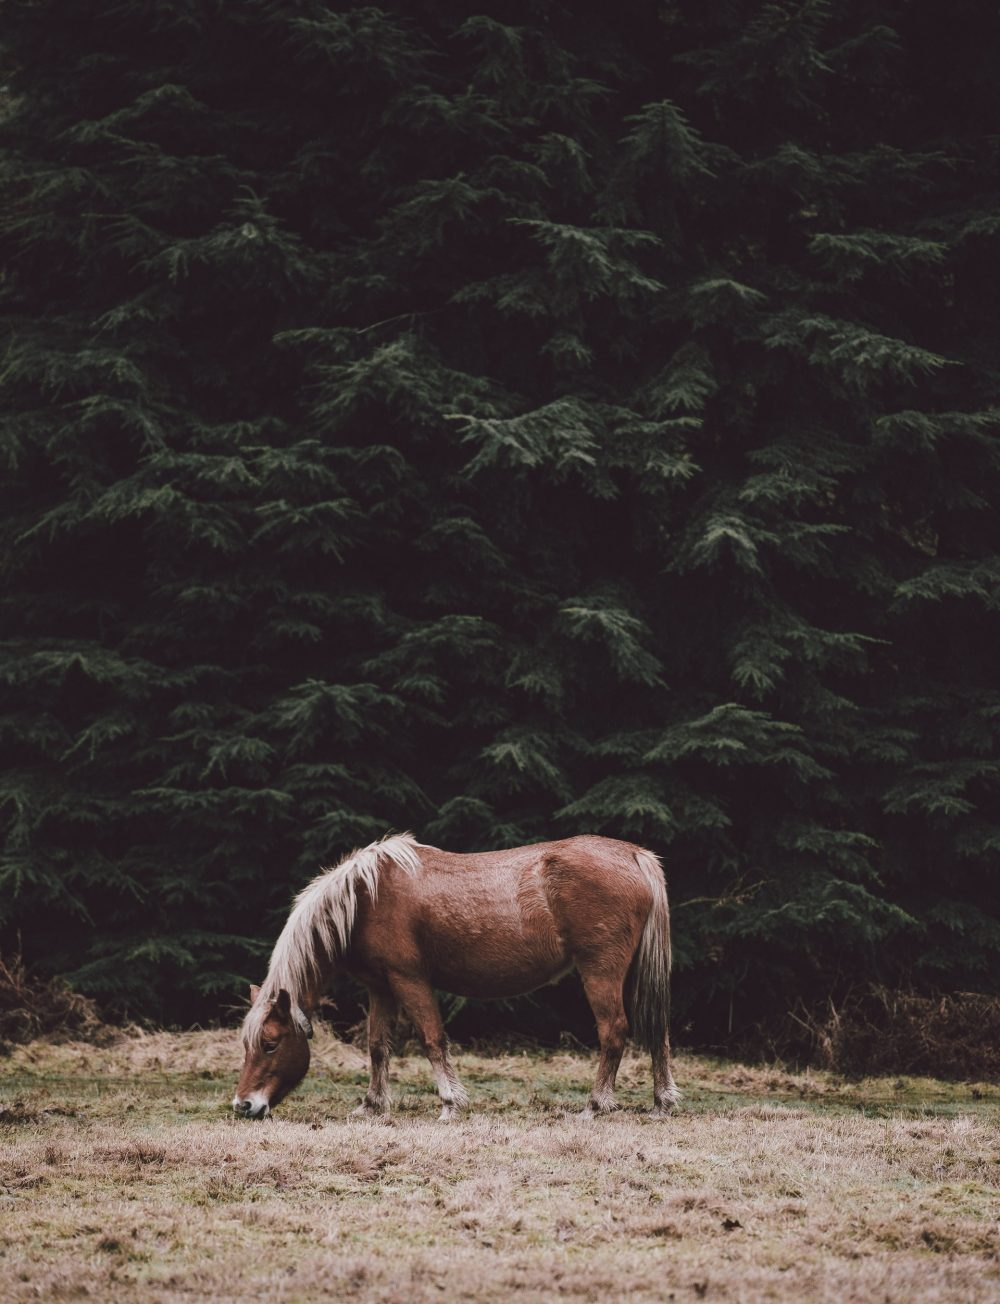 A horse with trees in the background